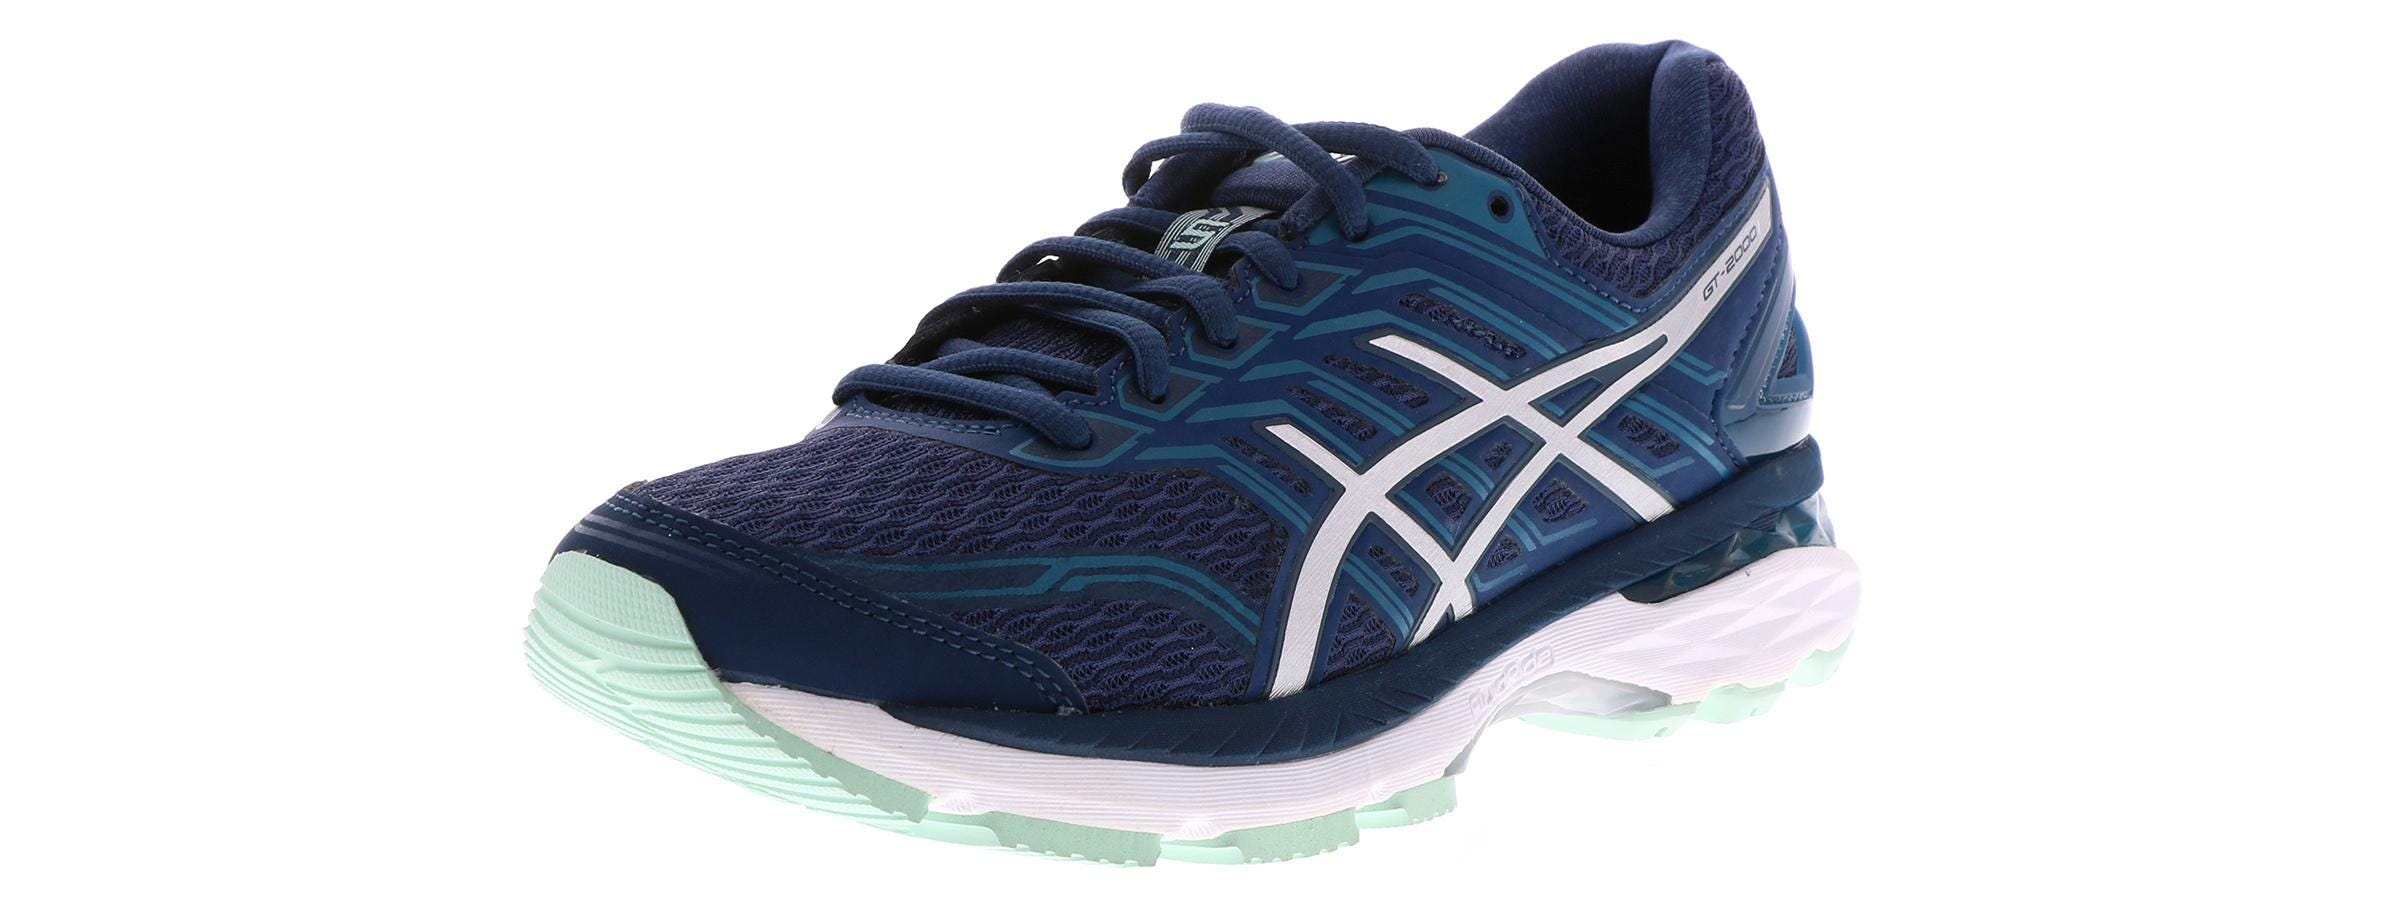 ffc8bfb7 Women's Asics Gt-2000 5 Navy | Shoe Sensation